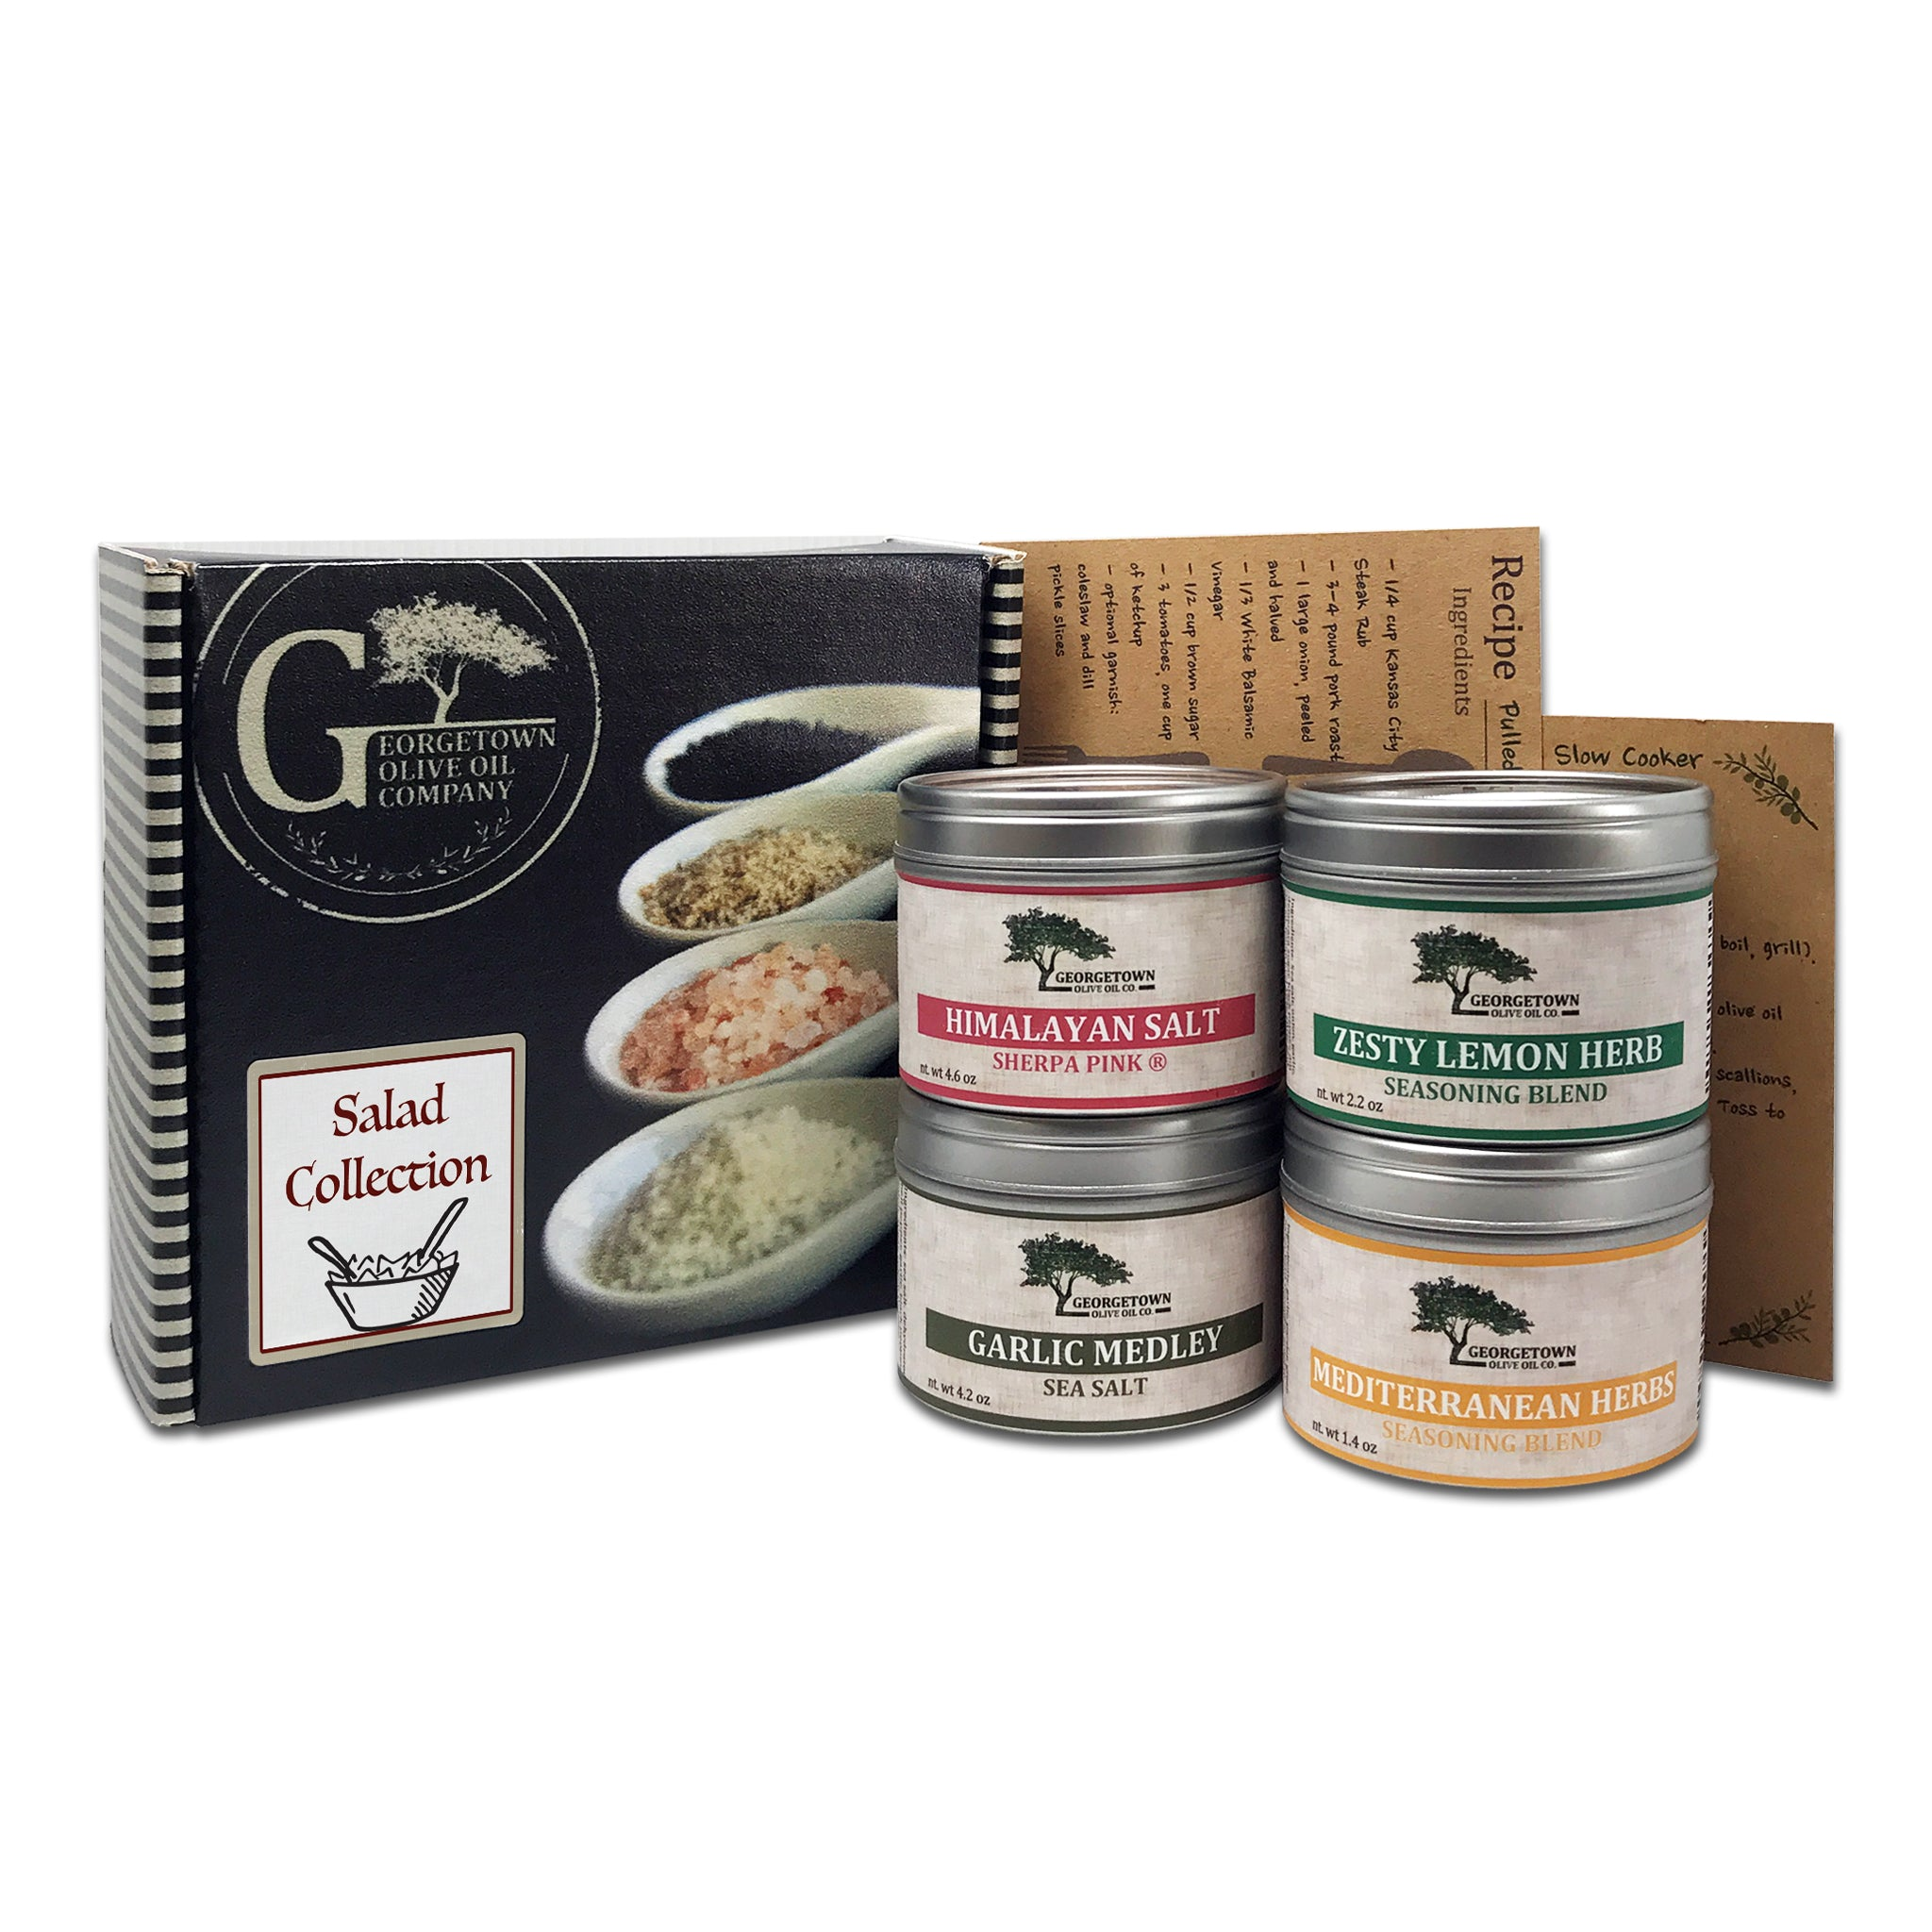 Salad Collection - Salts and Seasonings - Georgetown Olive Oil Co.